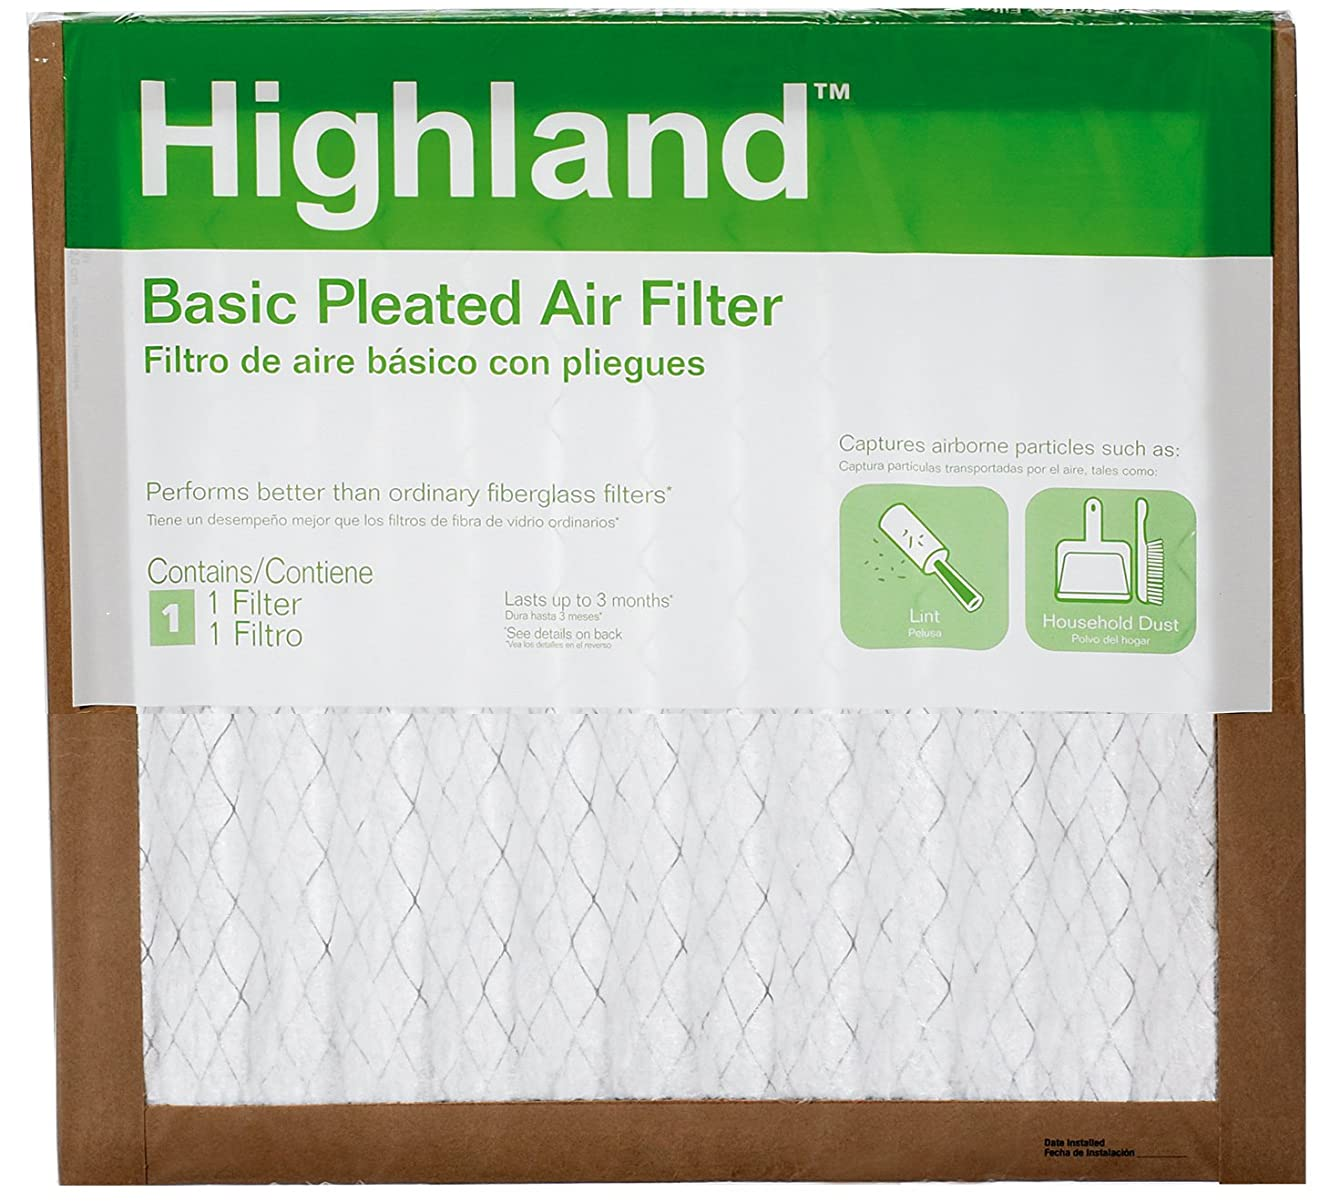 3M FBA11DC-6 Highland Basic Pleated Air Filter, 14